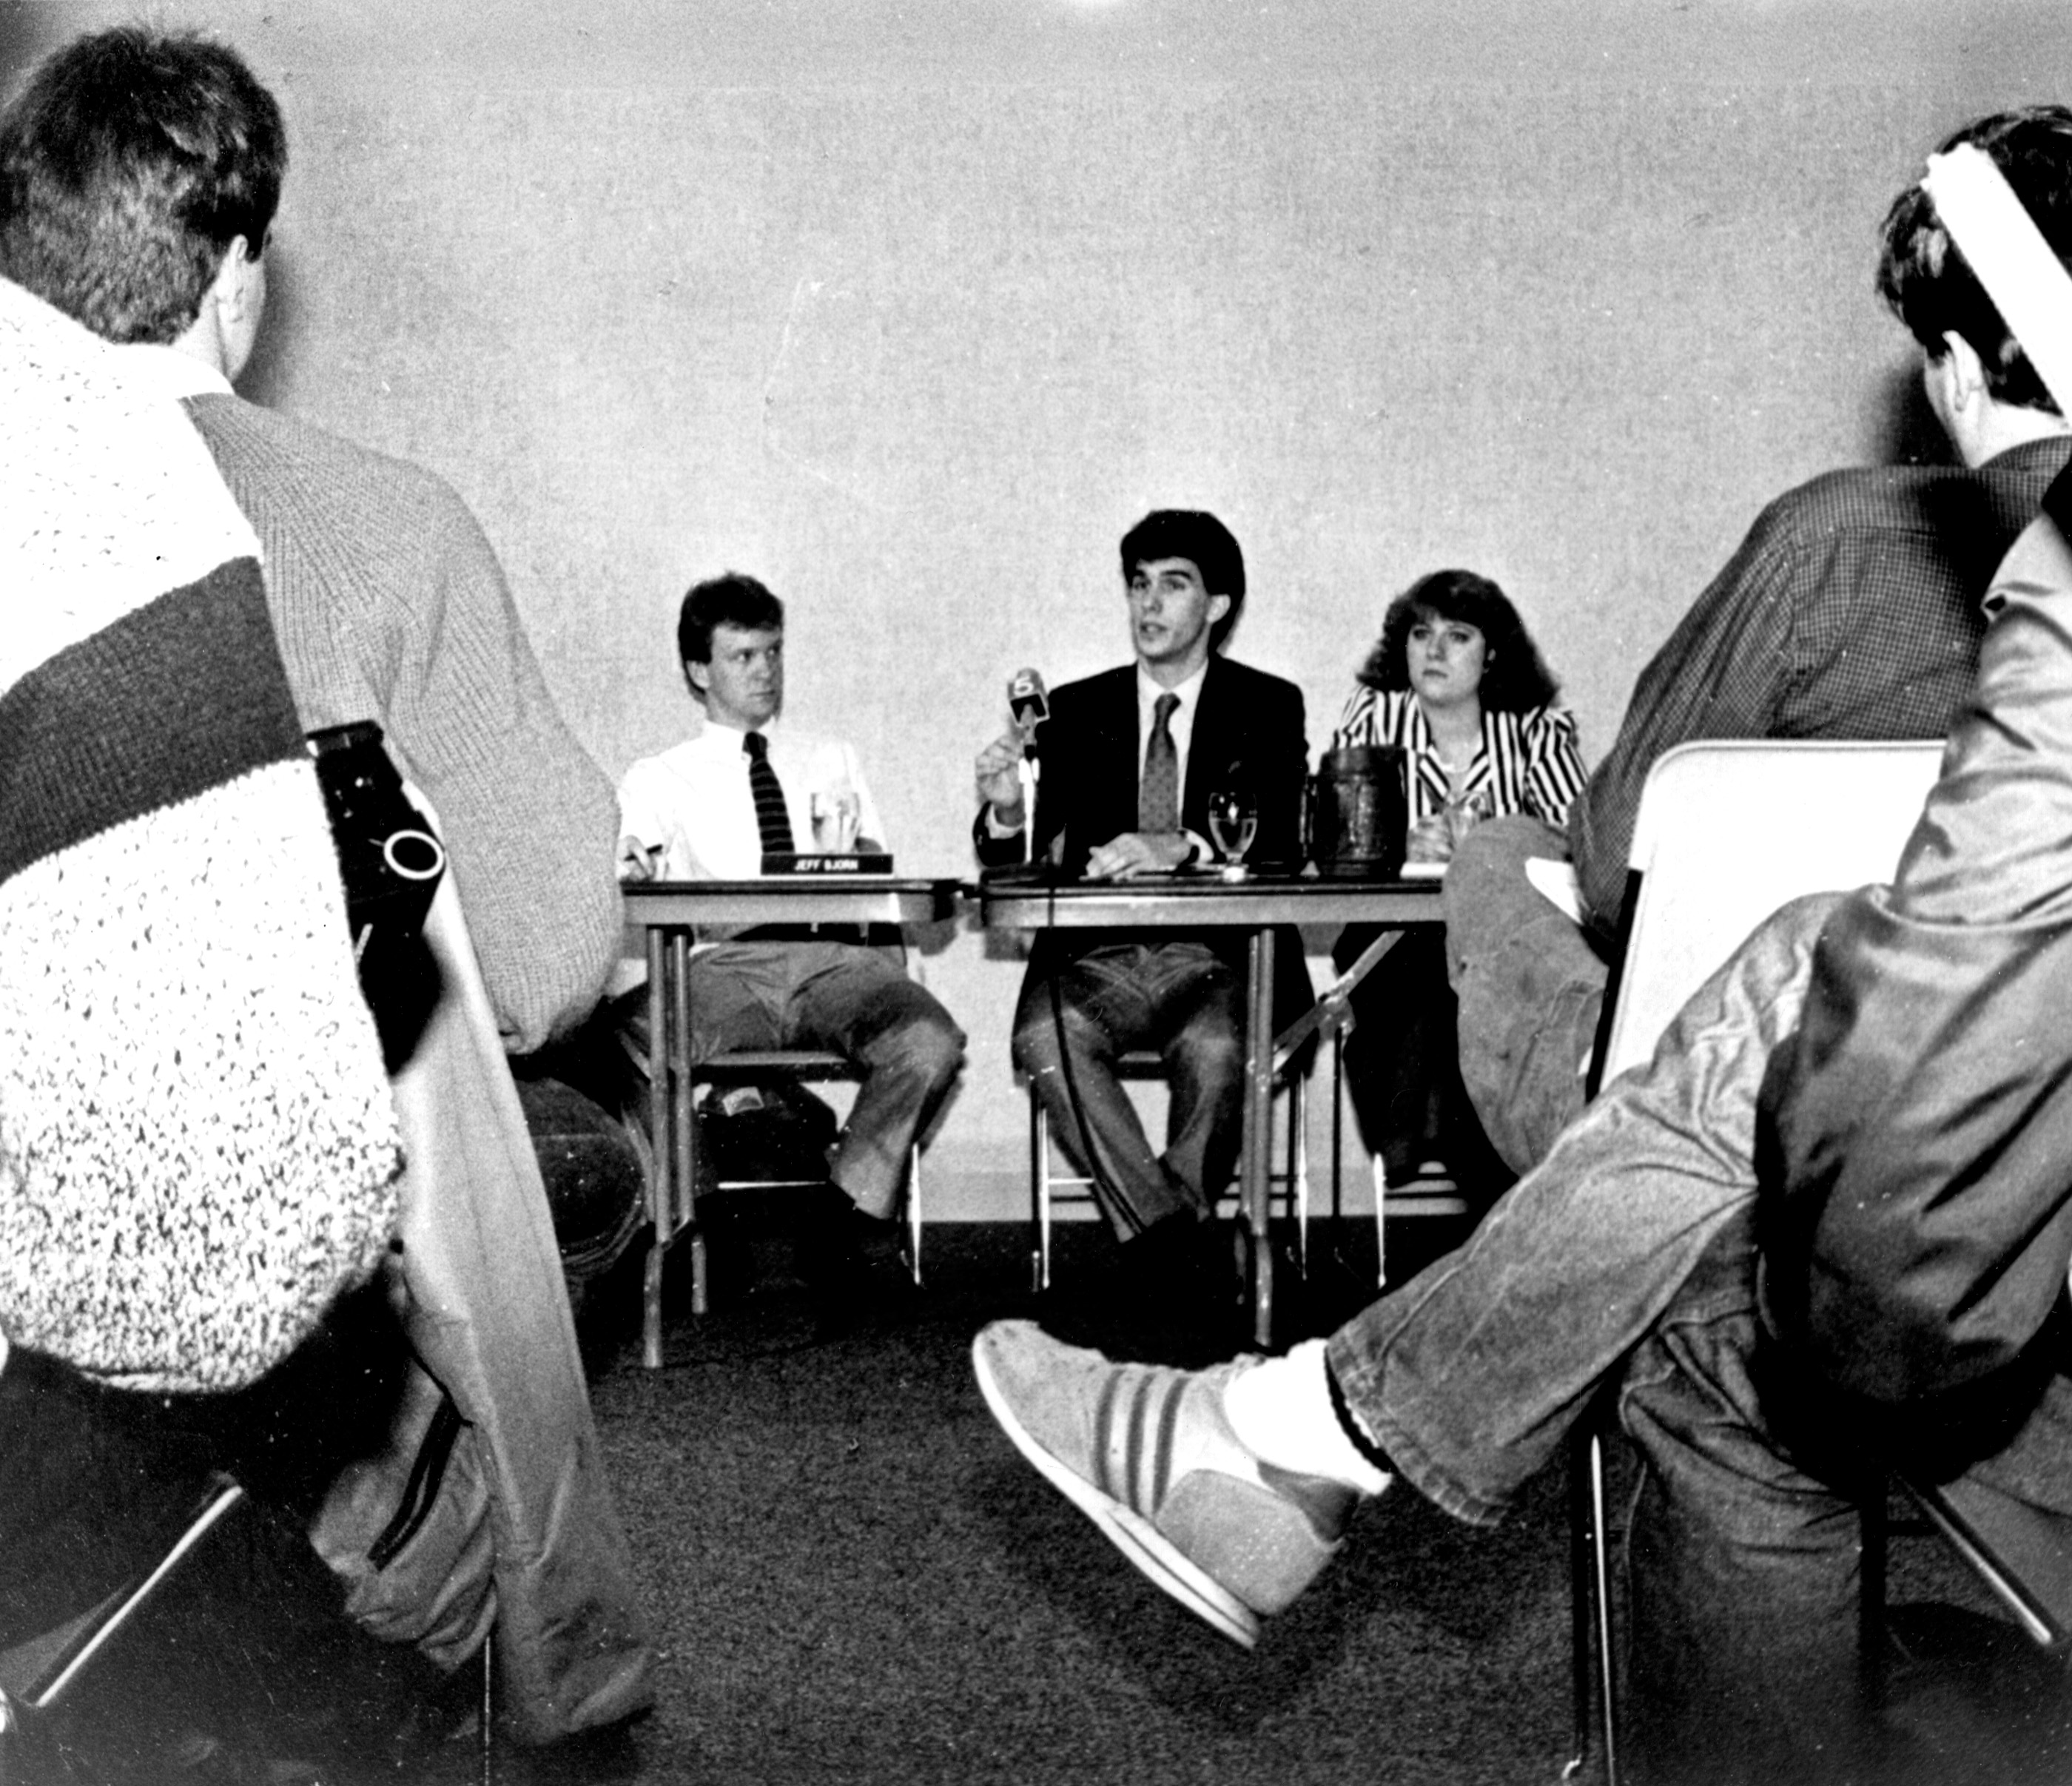 The 1987 Marquette yearbook shows student government officials Jeff Bjorn, Scott Walker and Kiki White announcing results of an impeachment probe of student leaders. Source: Dept. of Special Collections and University Archives, Marquette U. Libraries